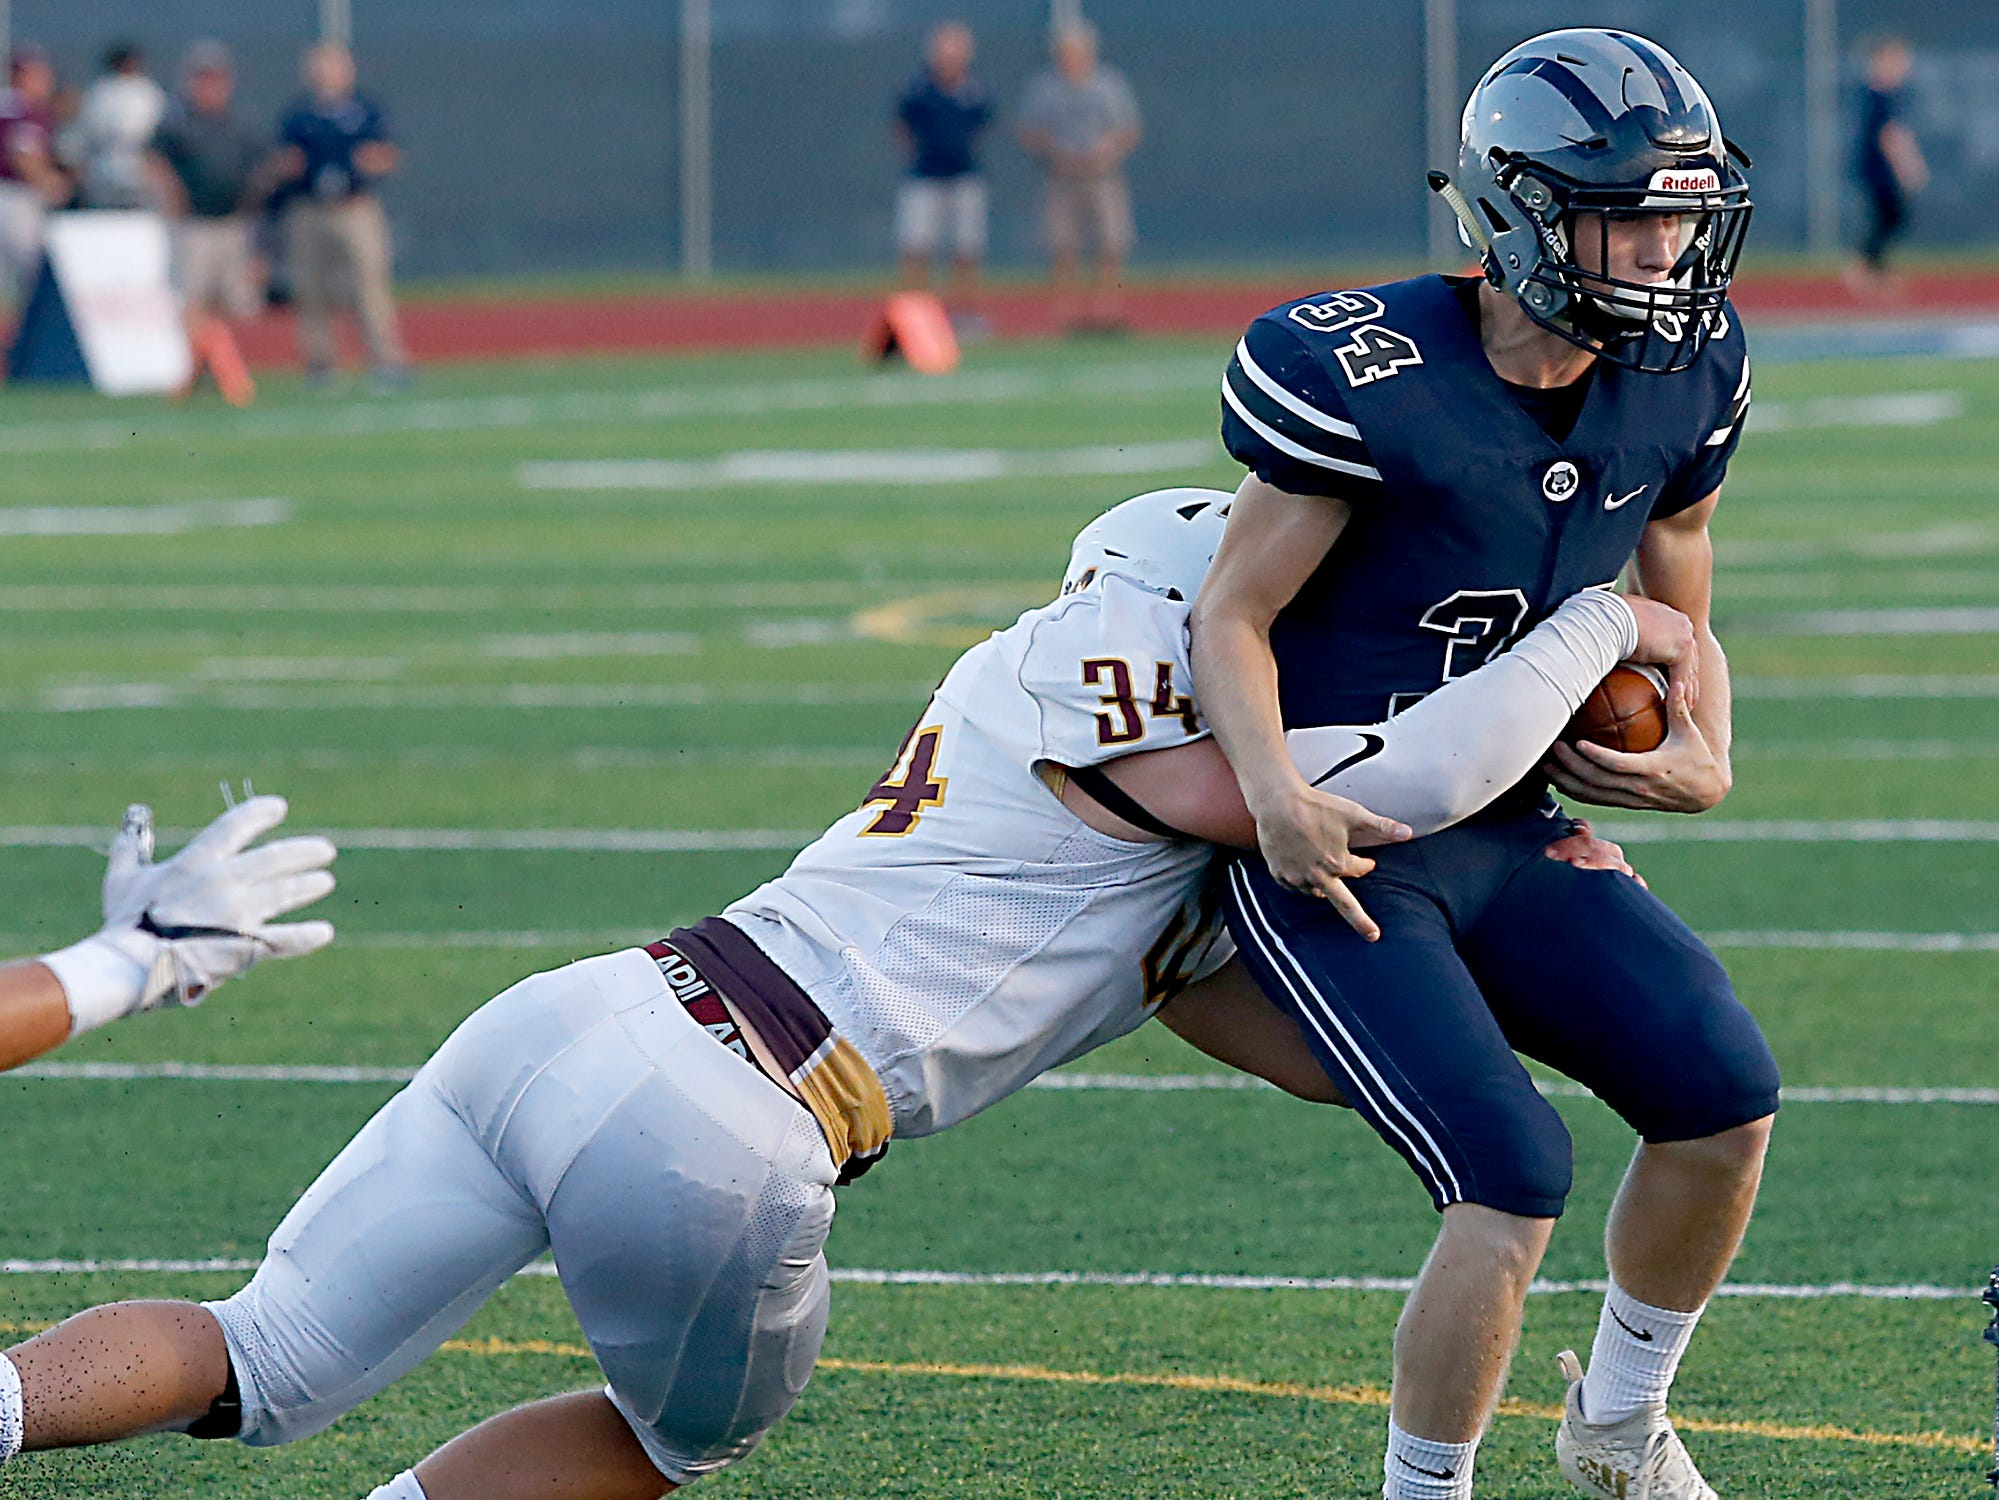 Turpin's Hunter Pembleton brings down West Clermont's Ryan Cann during their 2018 Skyline Chili Crosstown Showdown at West Clermont Friday, Sept. 14, 2018.